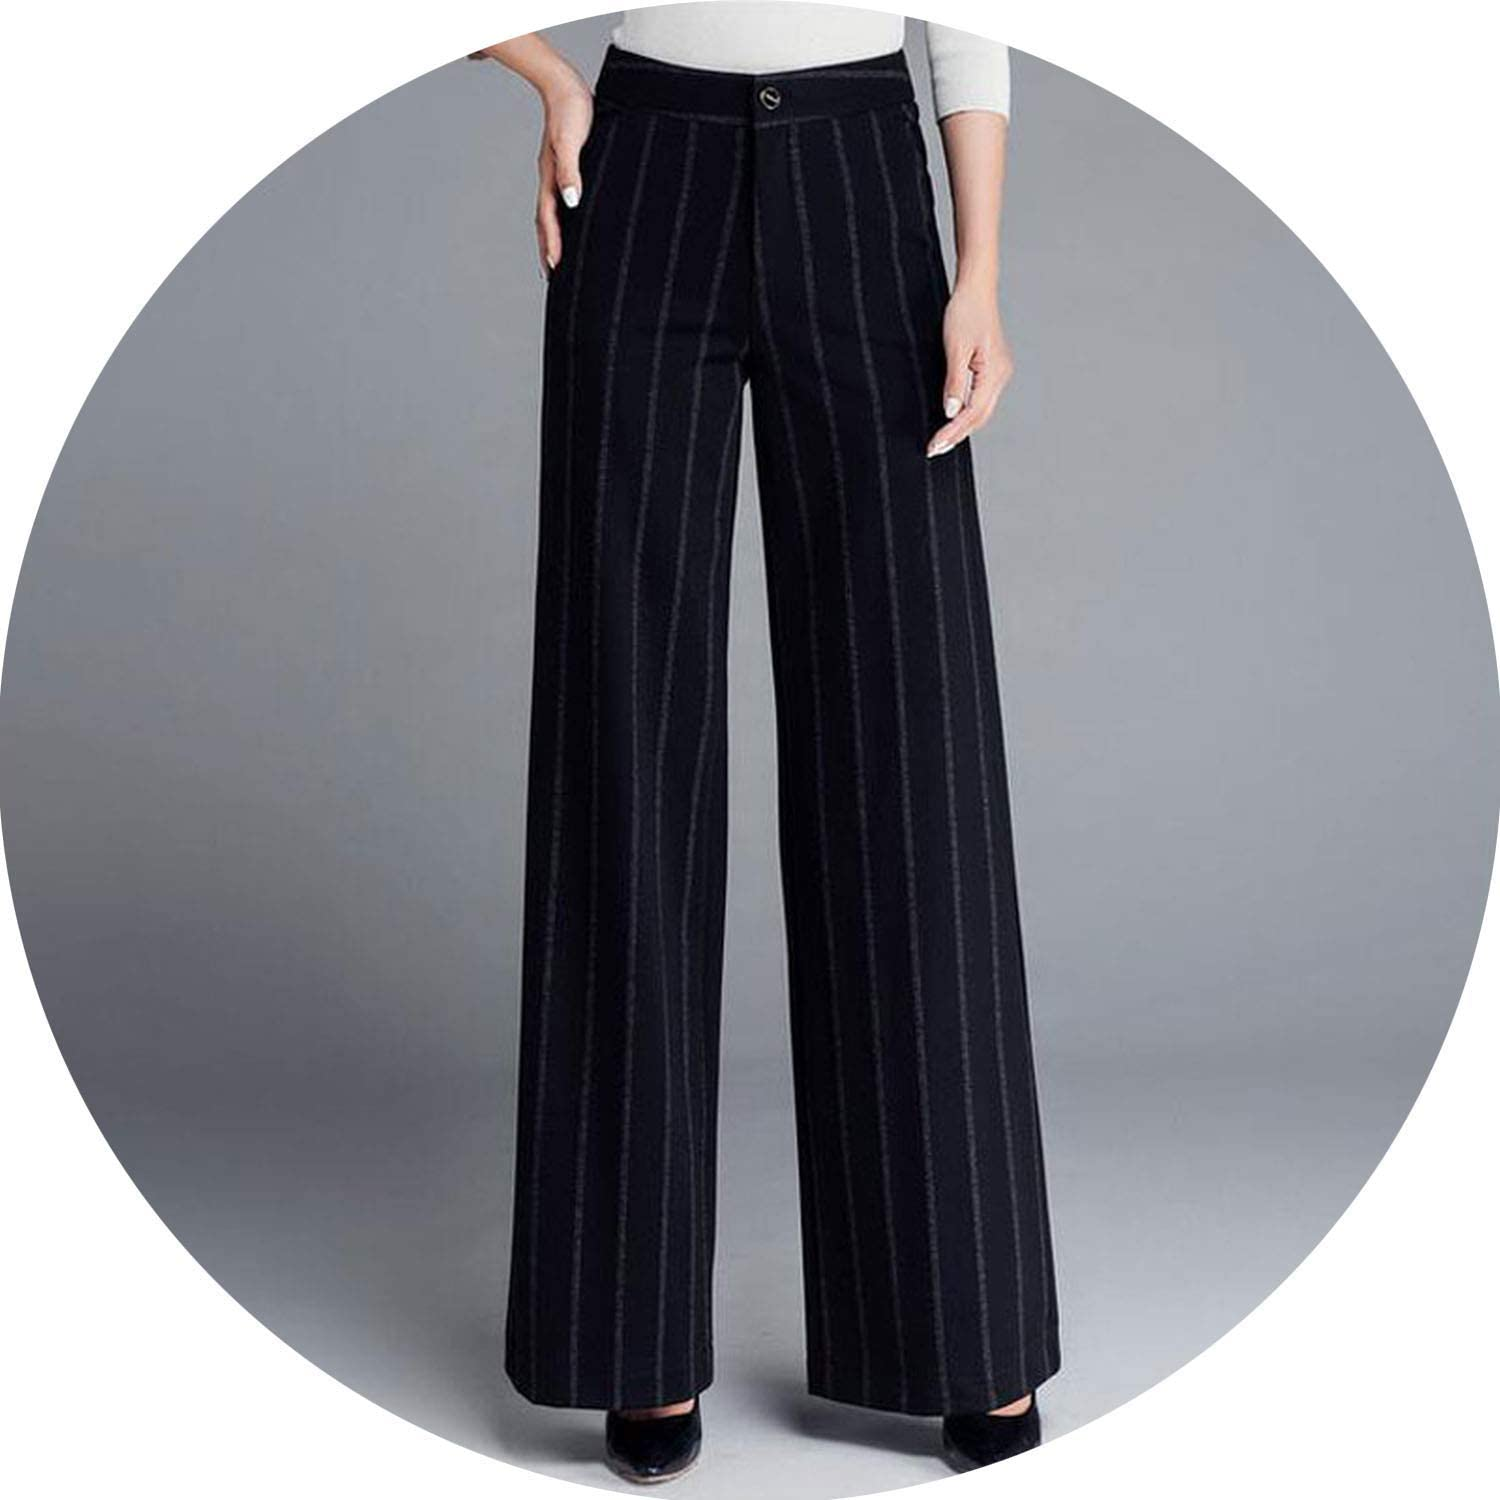 Can't be satisfied Women Winter Thick Pants Warm Trousers Casual Stretch Black Striped Wide Leg Pants Woman Loose Pant 37